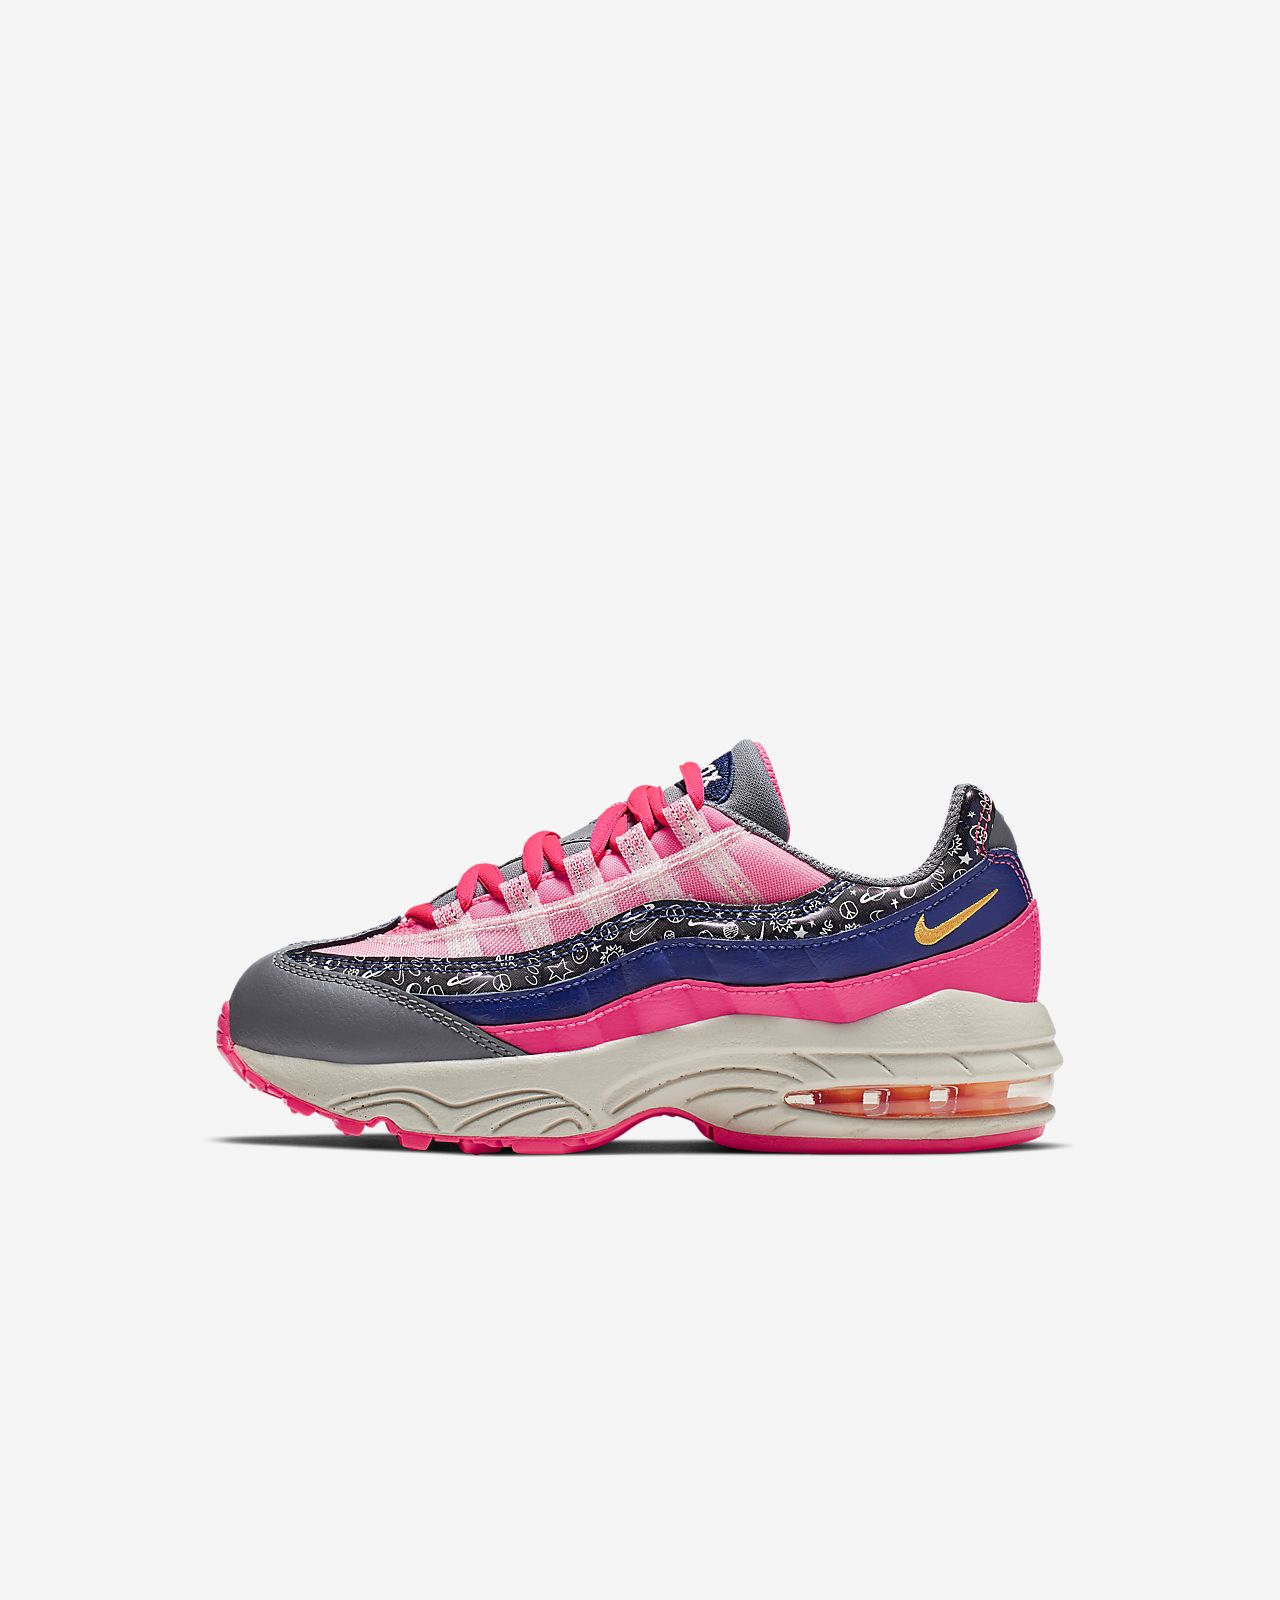 half off bdd9d 177c2 Nike Air Max 95 Little Kids  Shoe. Nike.com